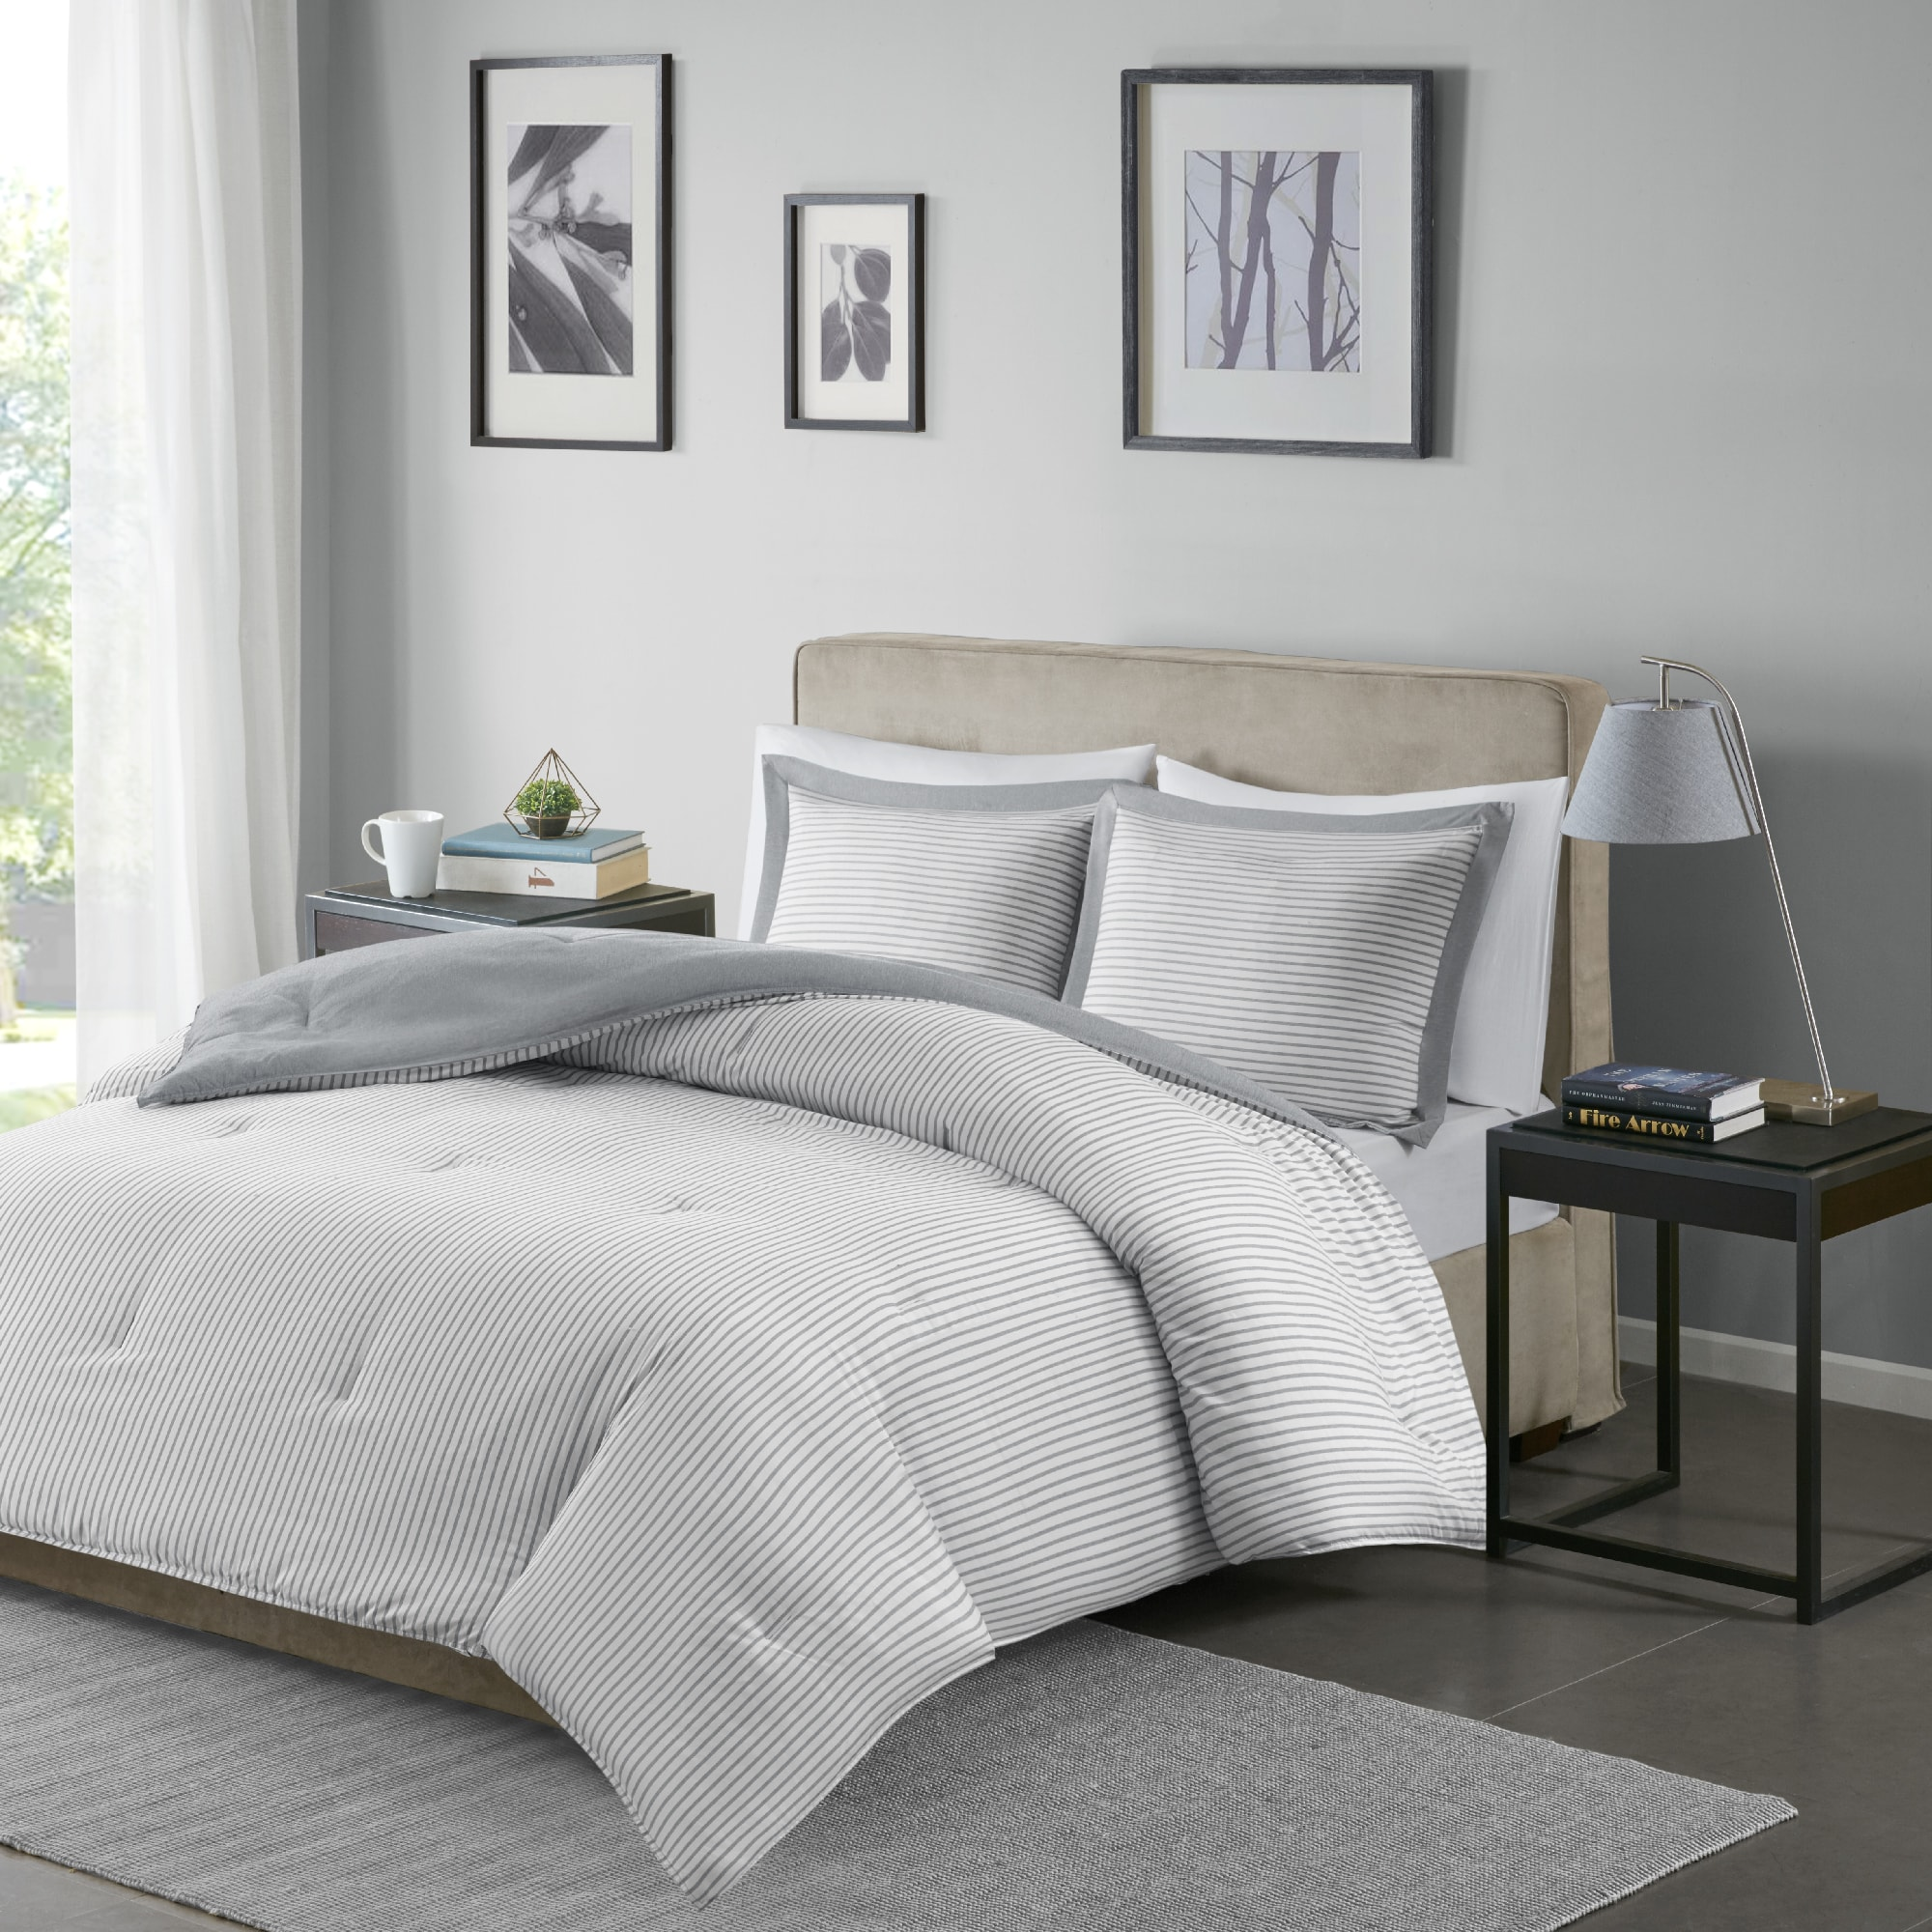 comforter on overstock reversible free all alternative luxurious over classics home superior orders product shipping bath season bedding down